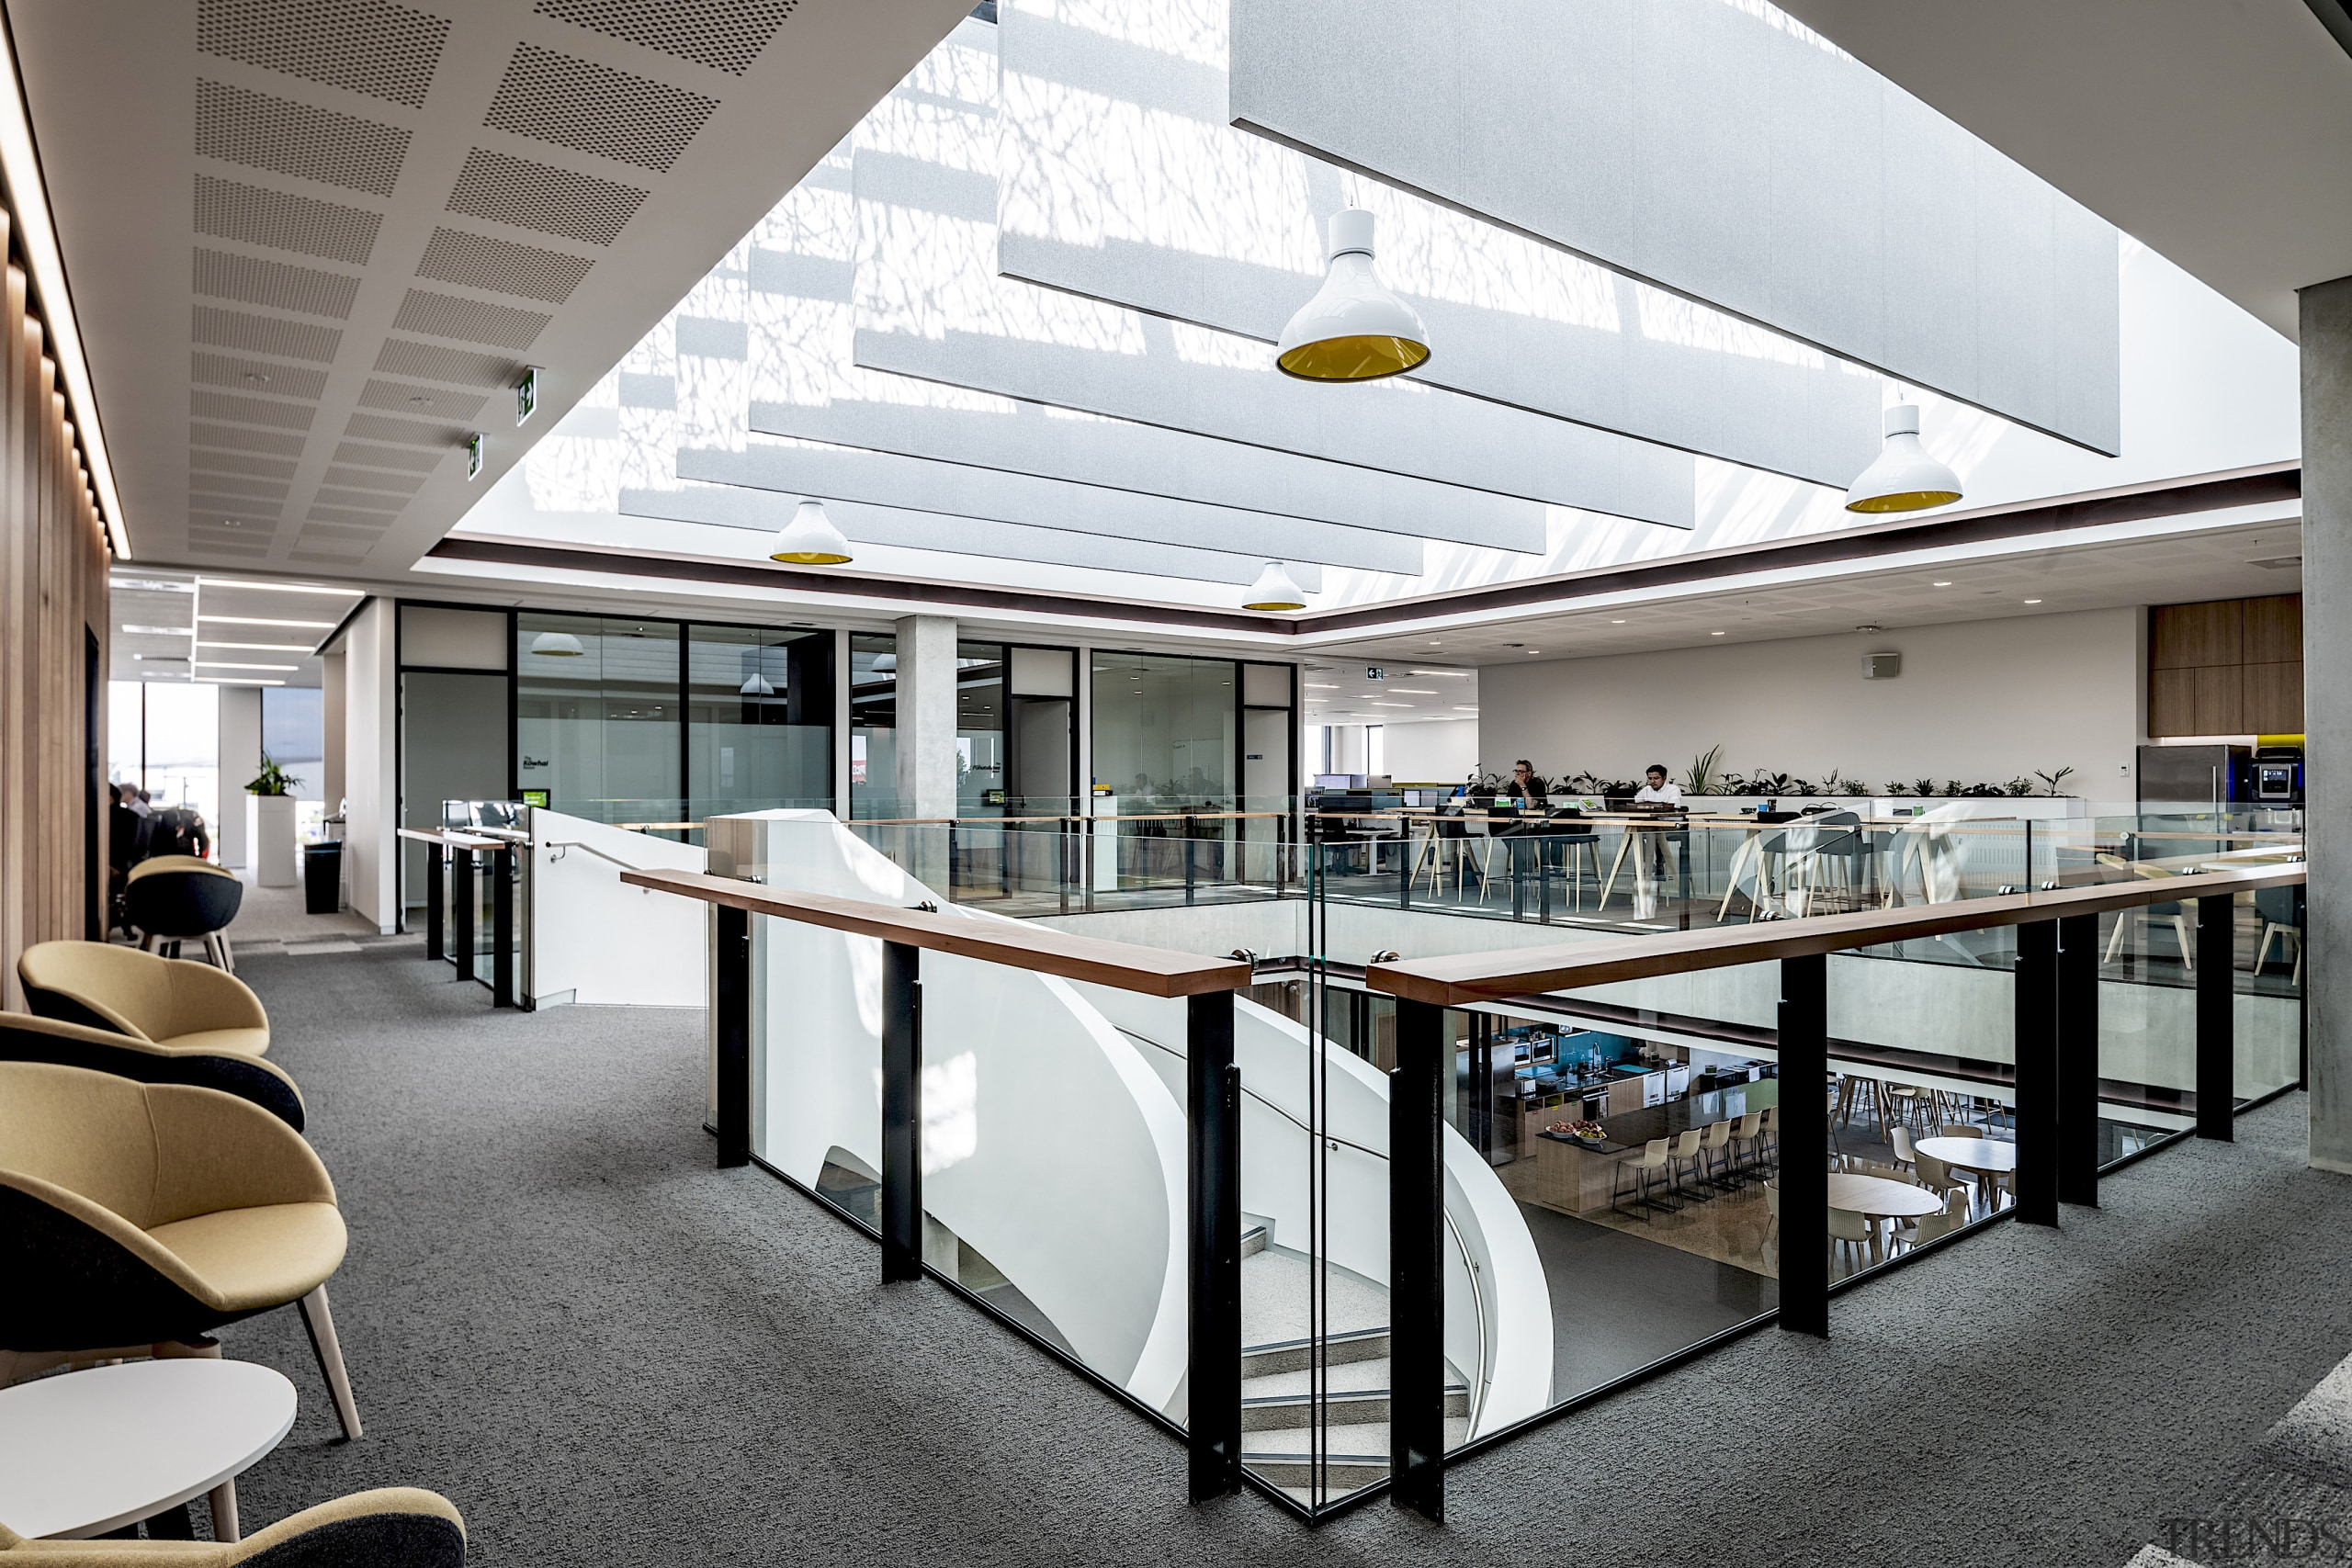 Upstairs meeting rooms also open onto the square